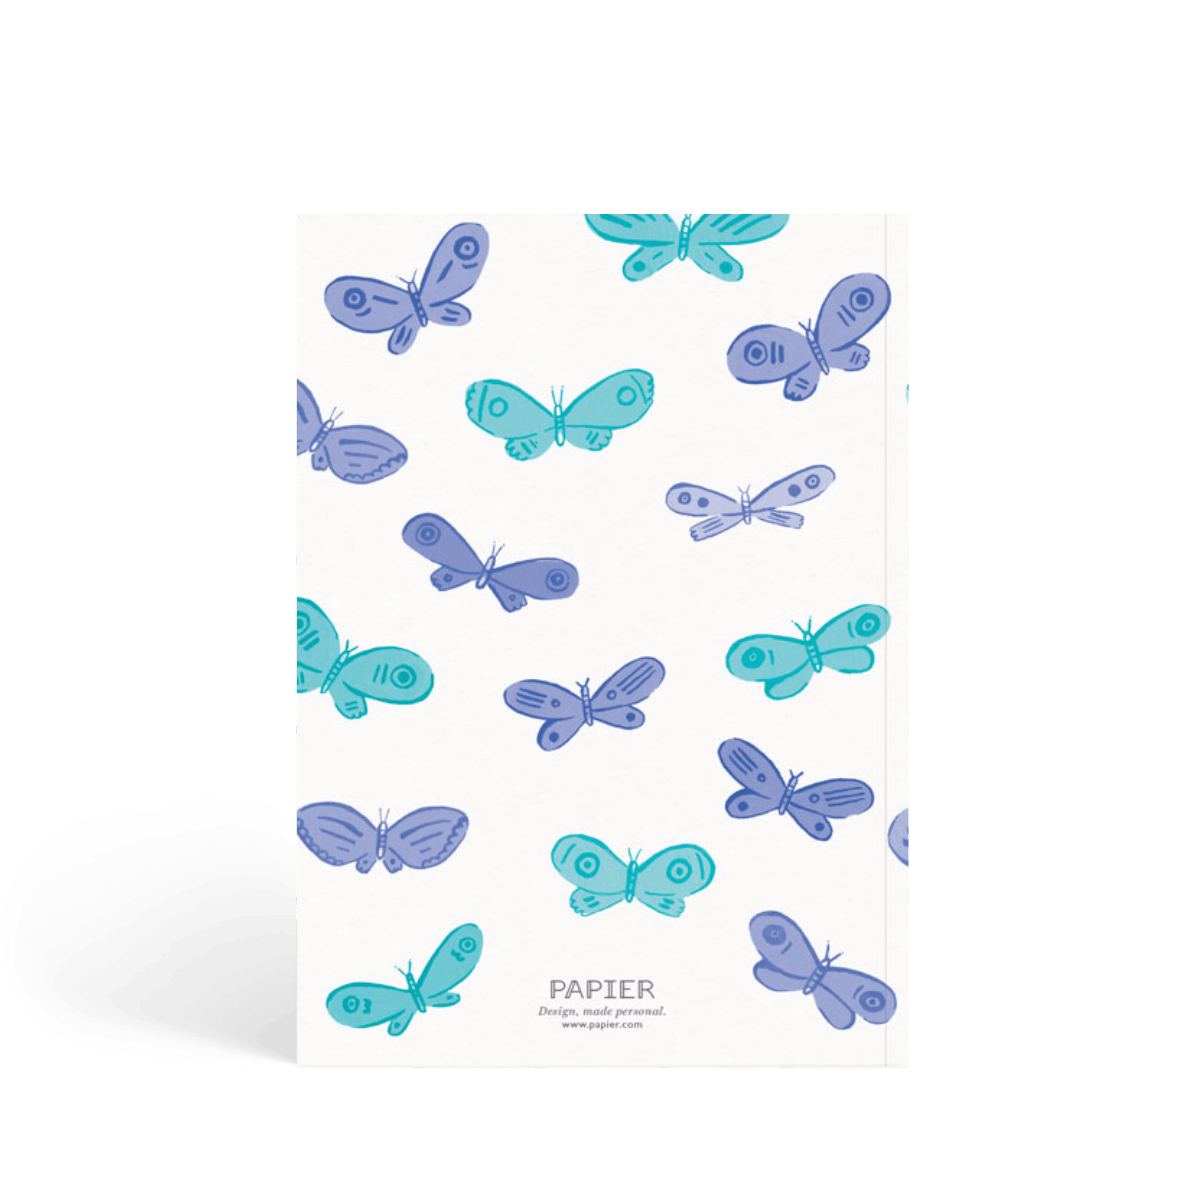 Https%3a%2f%2fwww.papier.com%2fproduct image%2f13770%2f5%2fblue butterflies 3538 back 1479221169.png?ixlib=rb 1.1